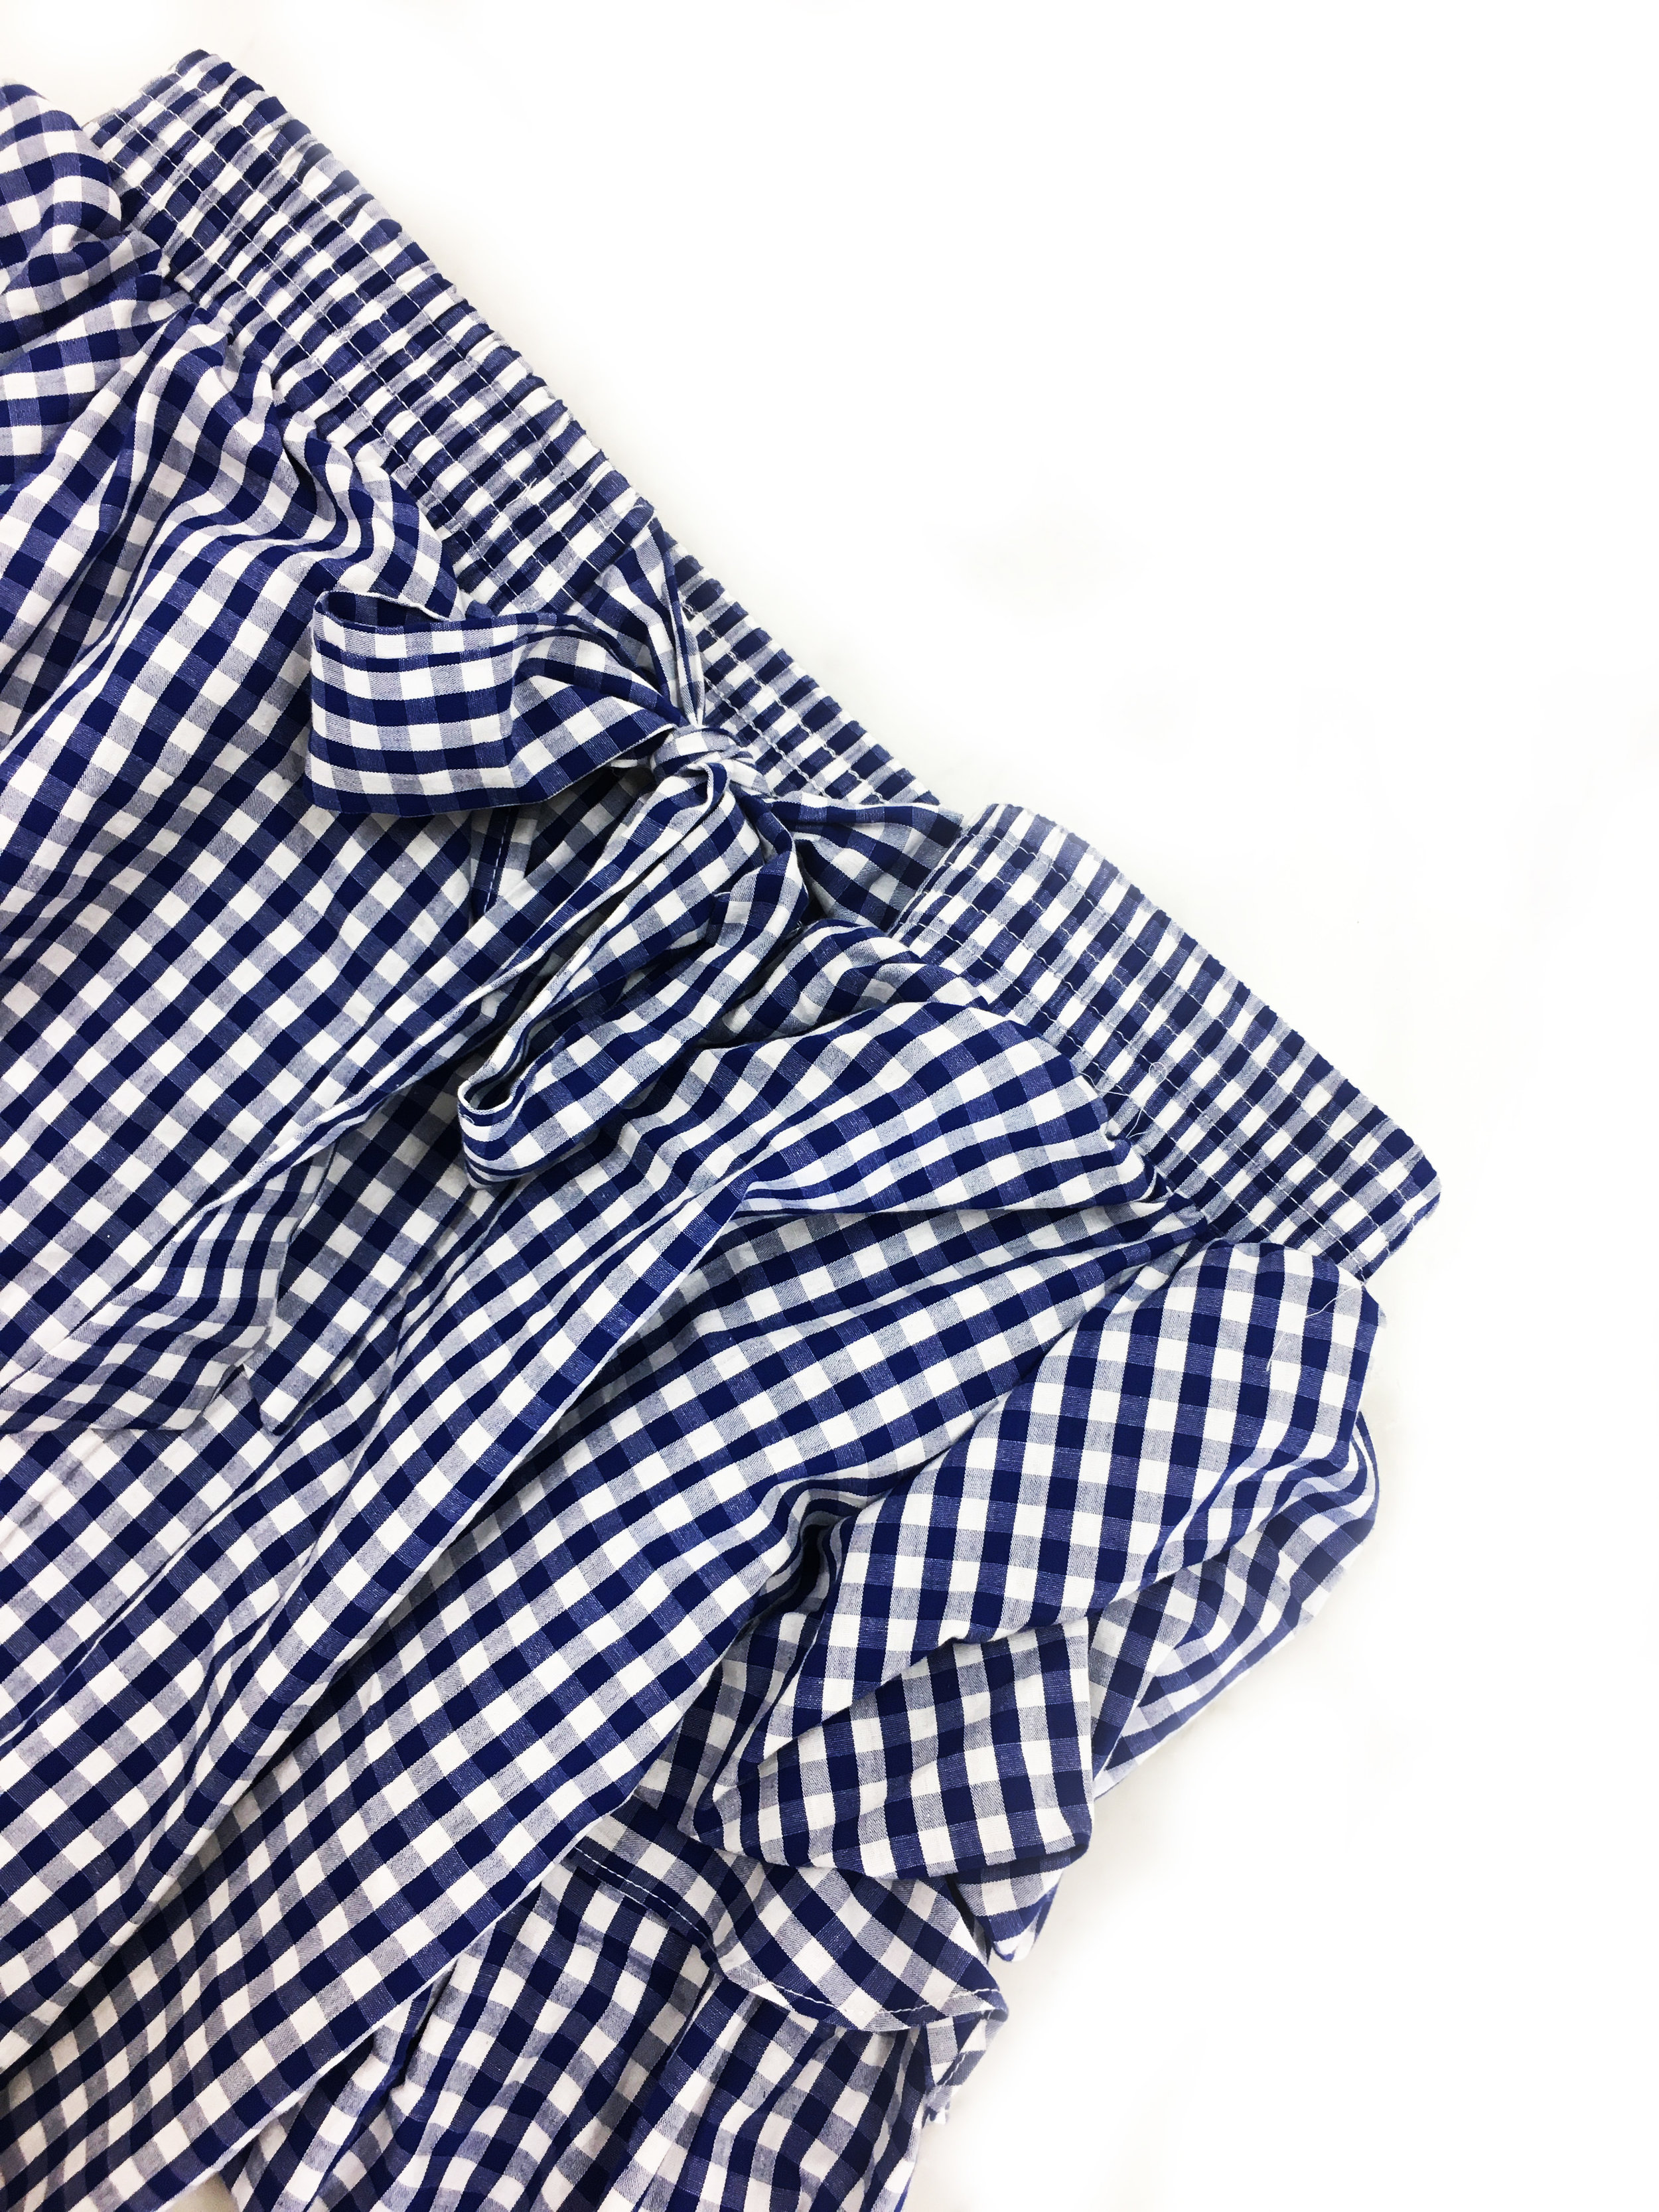 Polka Dots &Stripes &Gingham... oh my! - What's not to love about all of these cute prints and patterns?! This adorable off the shoulder gingham top is a perfect example of the classic fabric with a modern twist. Picking new patterns and prints in bright colors will help change up your wardrobe. Feeling daring? Mix and match different patterns to embrace your wild side! If thats too much, I love a patterned top (like the one on the left) with white skinny jeans!